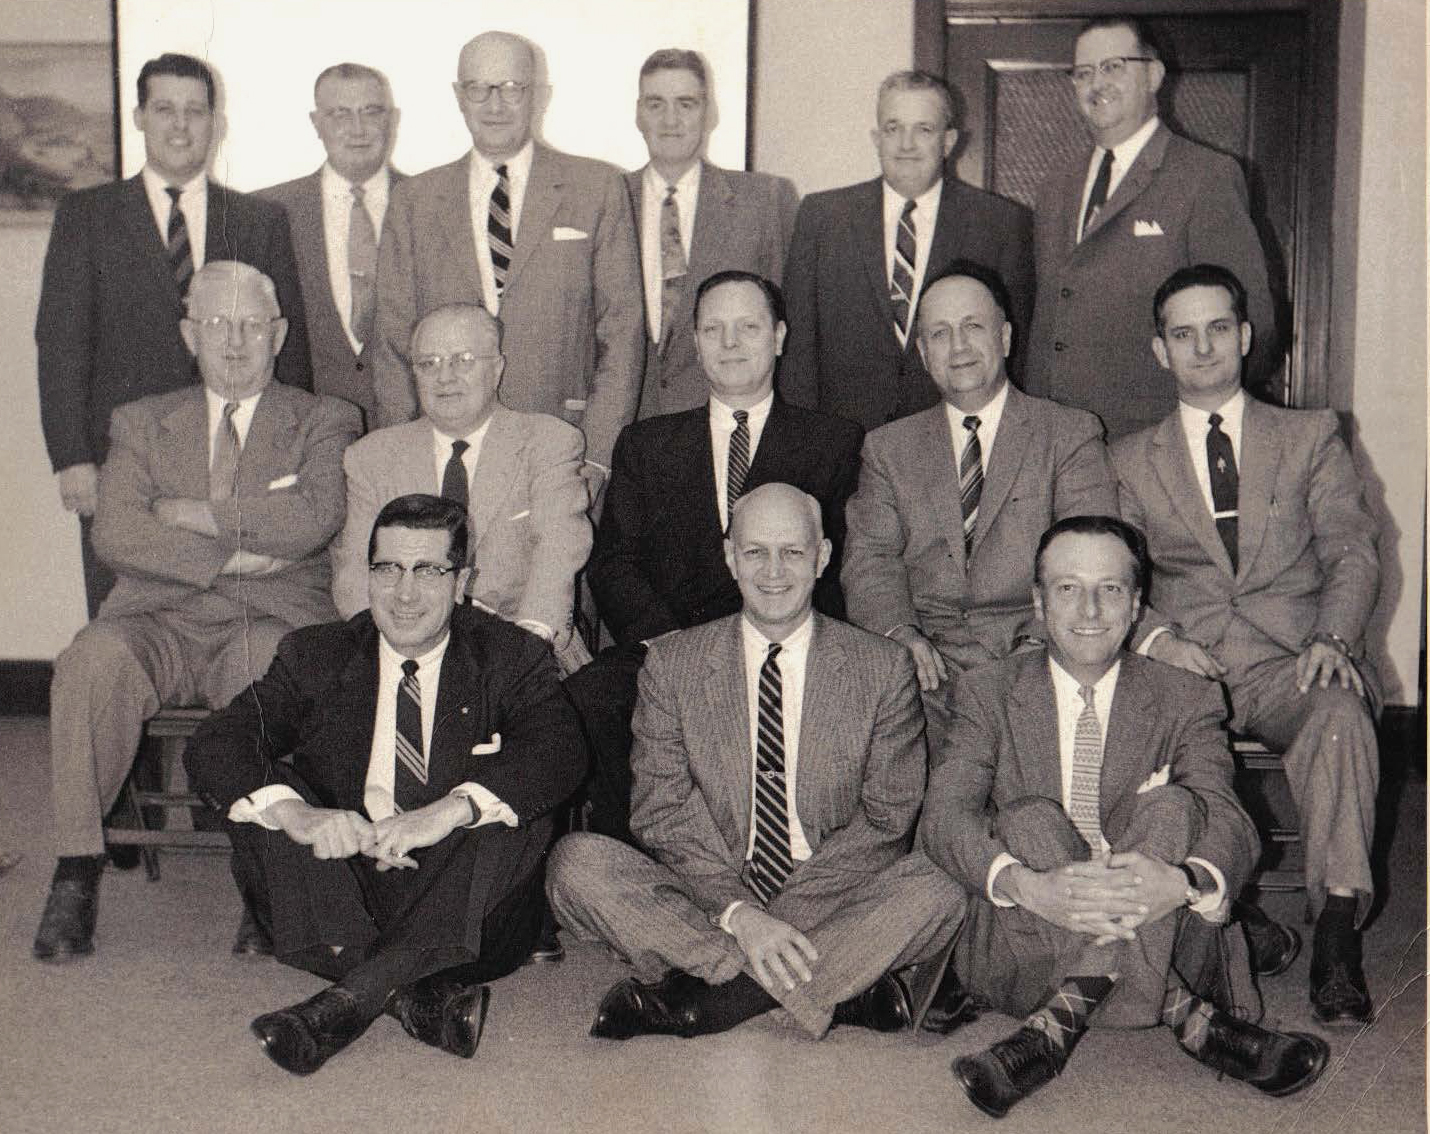 David St. John Greer, pictured here in the center of the middle row (dark suit) was a devoted Pennsylvania Railroad employee who purchased the Gutekunst album after the ill fated merger of the PRR and rival New York Central in 1968. After being in their possession for over 45 years the Greer family decided to donate the album to the Library Company of Philadelphia where it will  join a sizable collection of Gutekunst's work along side the William H. Rau commissions for the PRR. Image courtesy of the Greer Family.